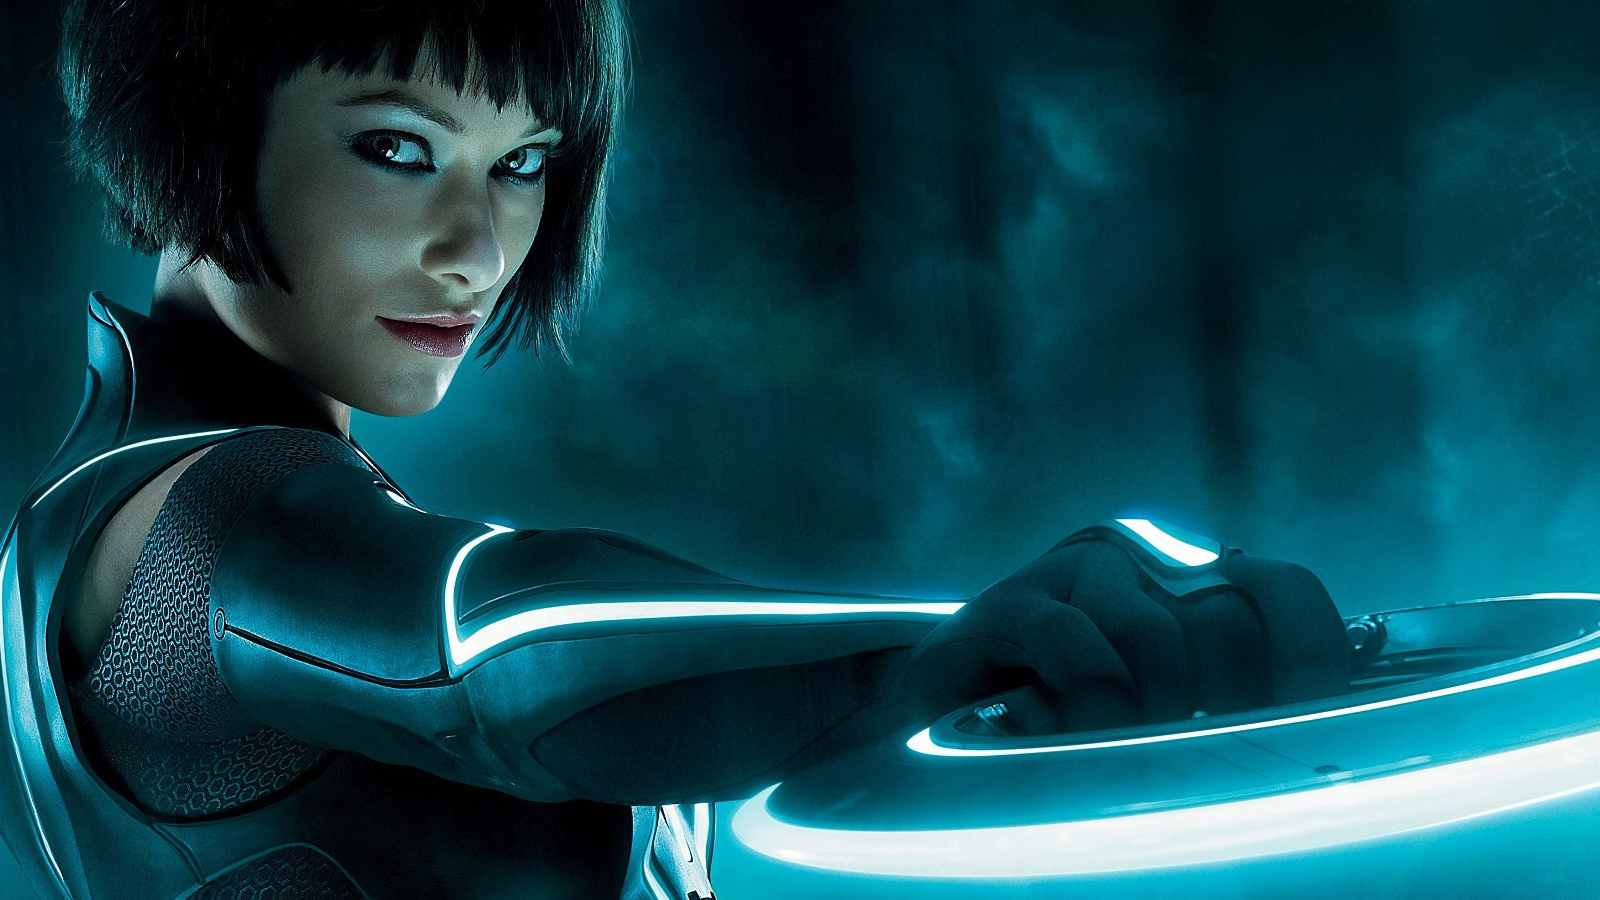 olivia Wilde Tron Movie HD Wallpaper